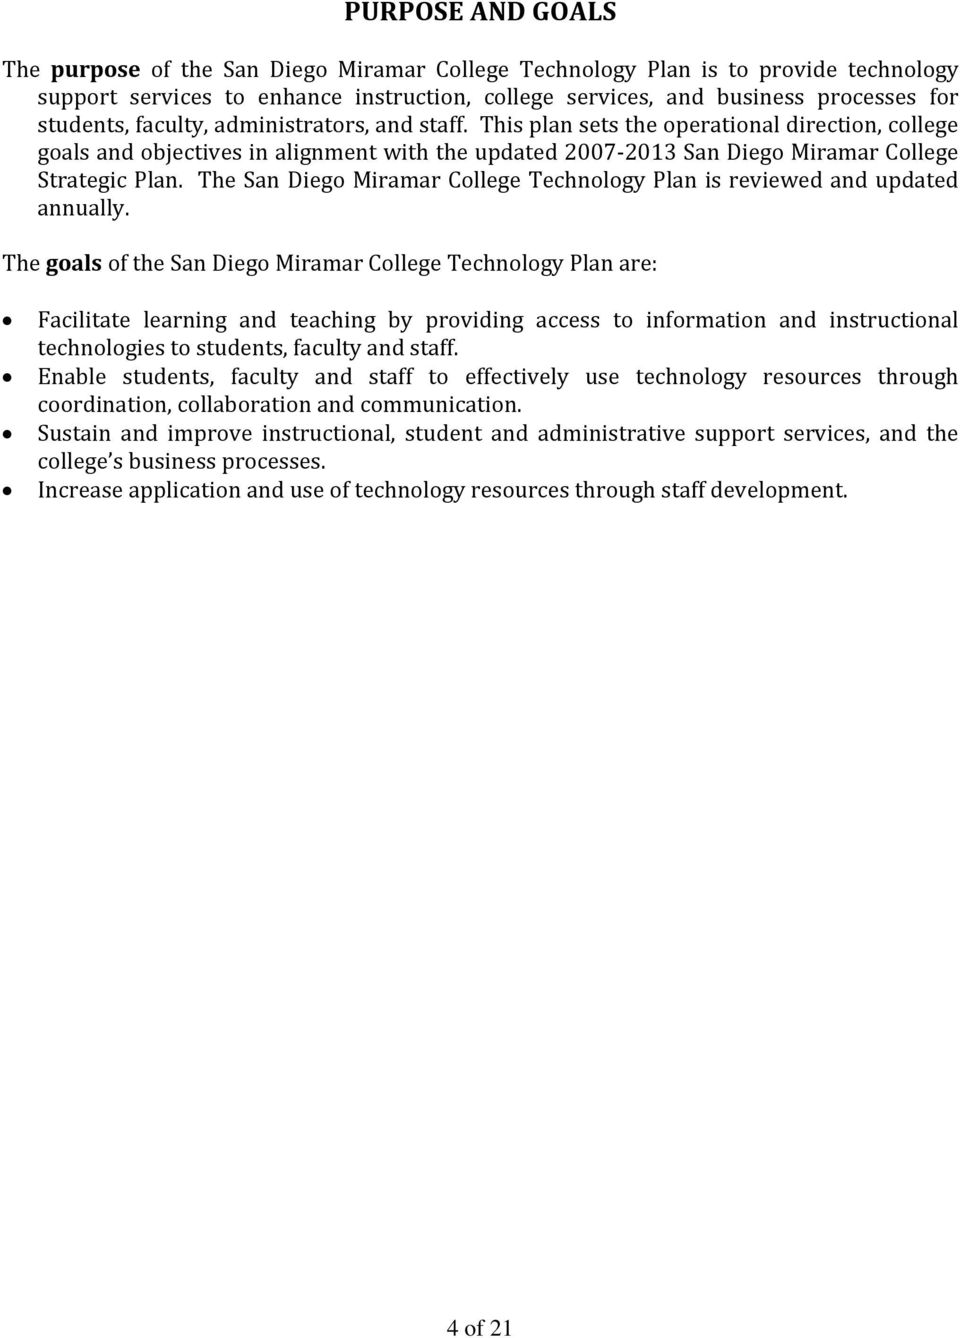 The San Diego Miramar College Technology Plan is reviewed and updated annually.